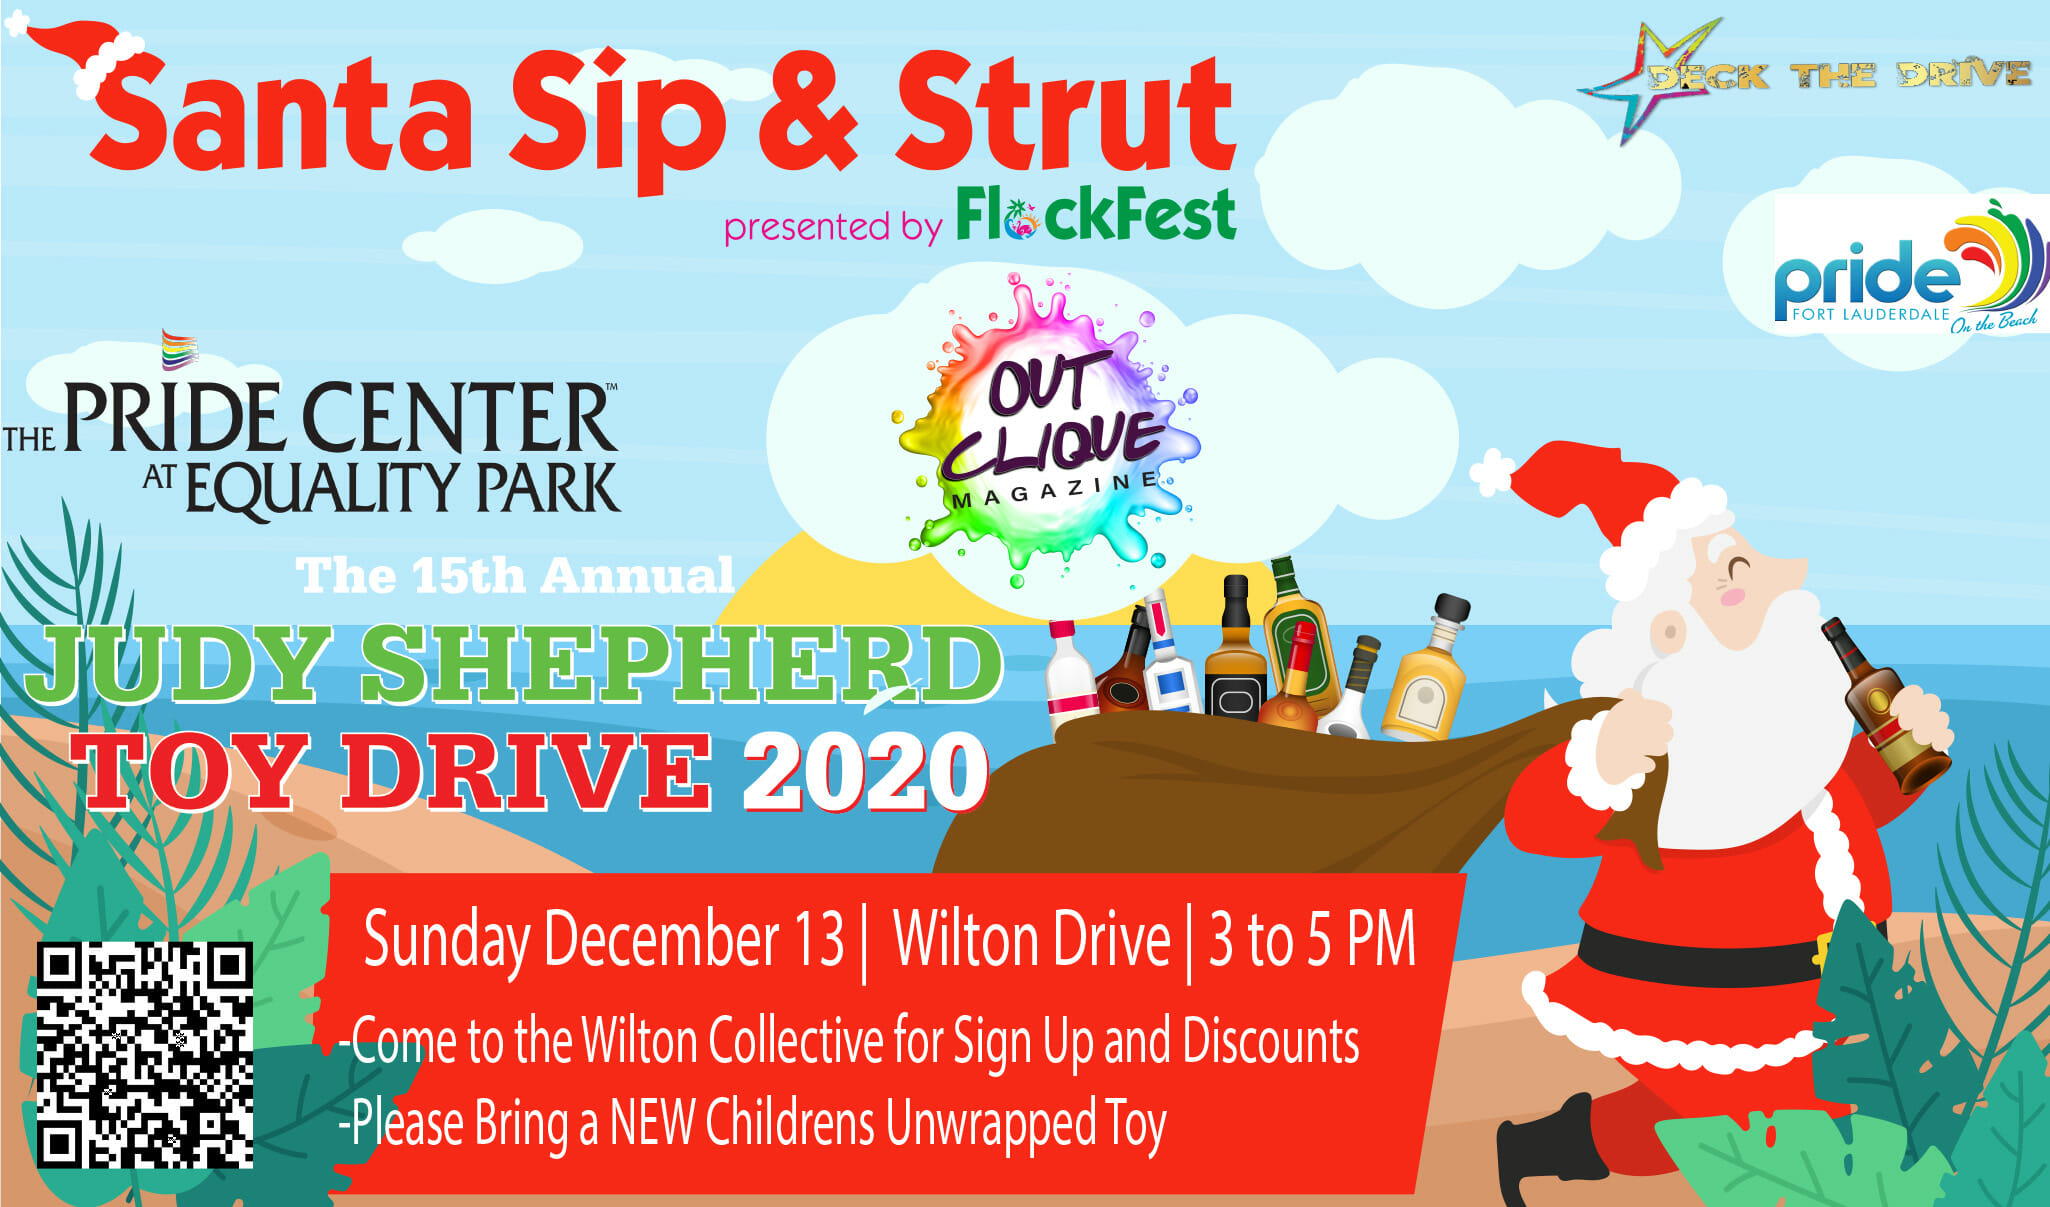 Santa Sip & Strut for Judy Shepherd Toy Drive